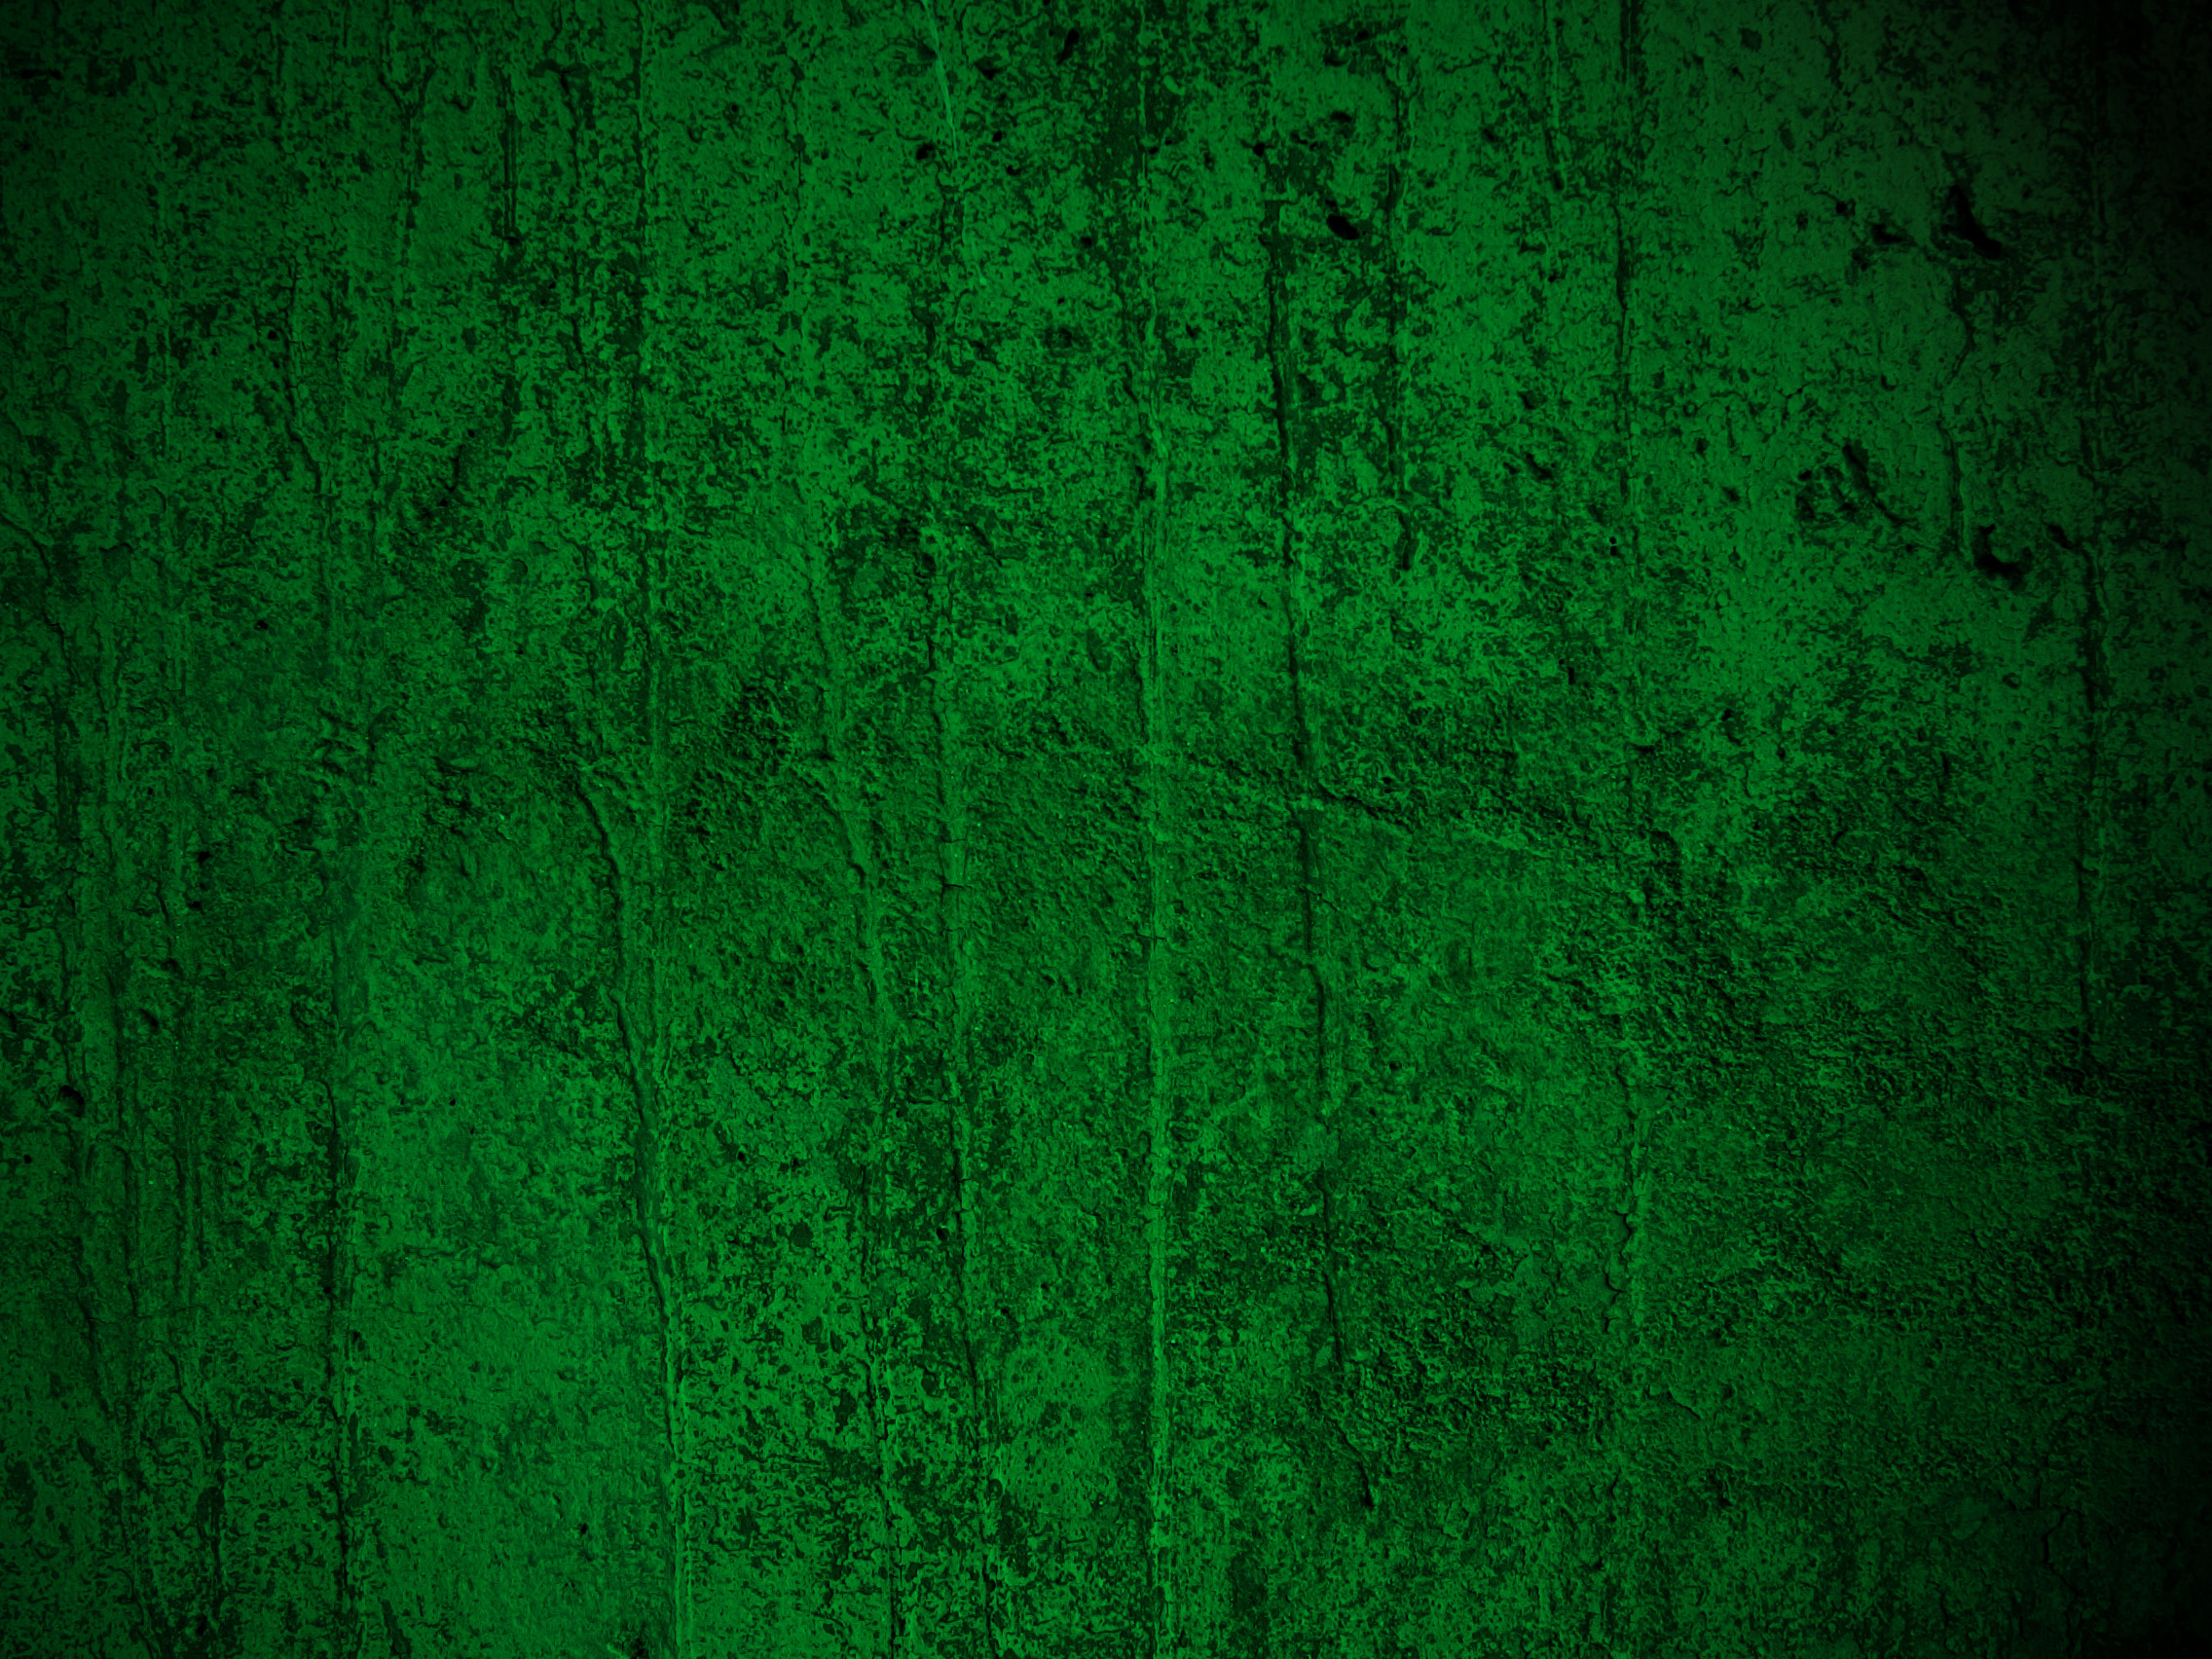 2272x1704 green ppt background #512